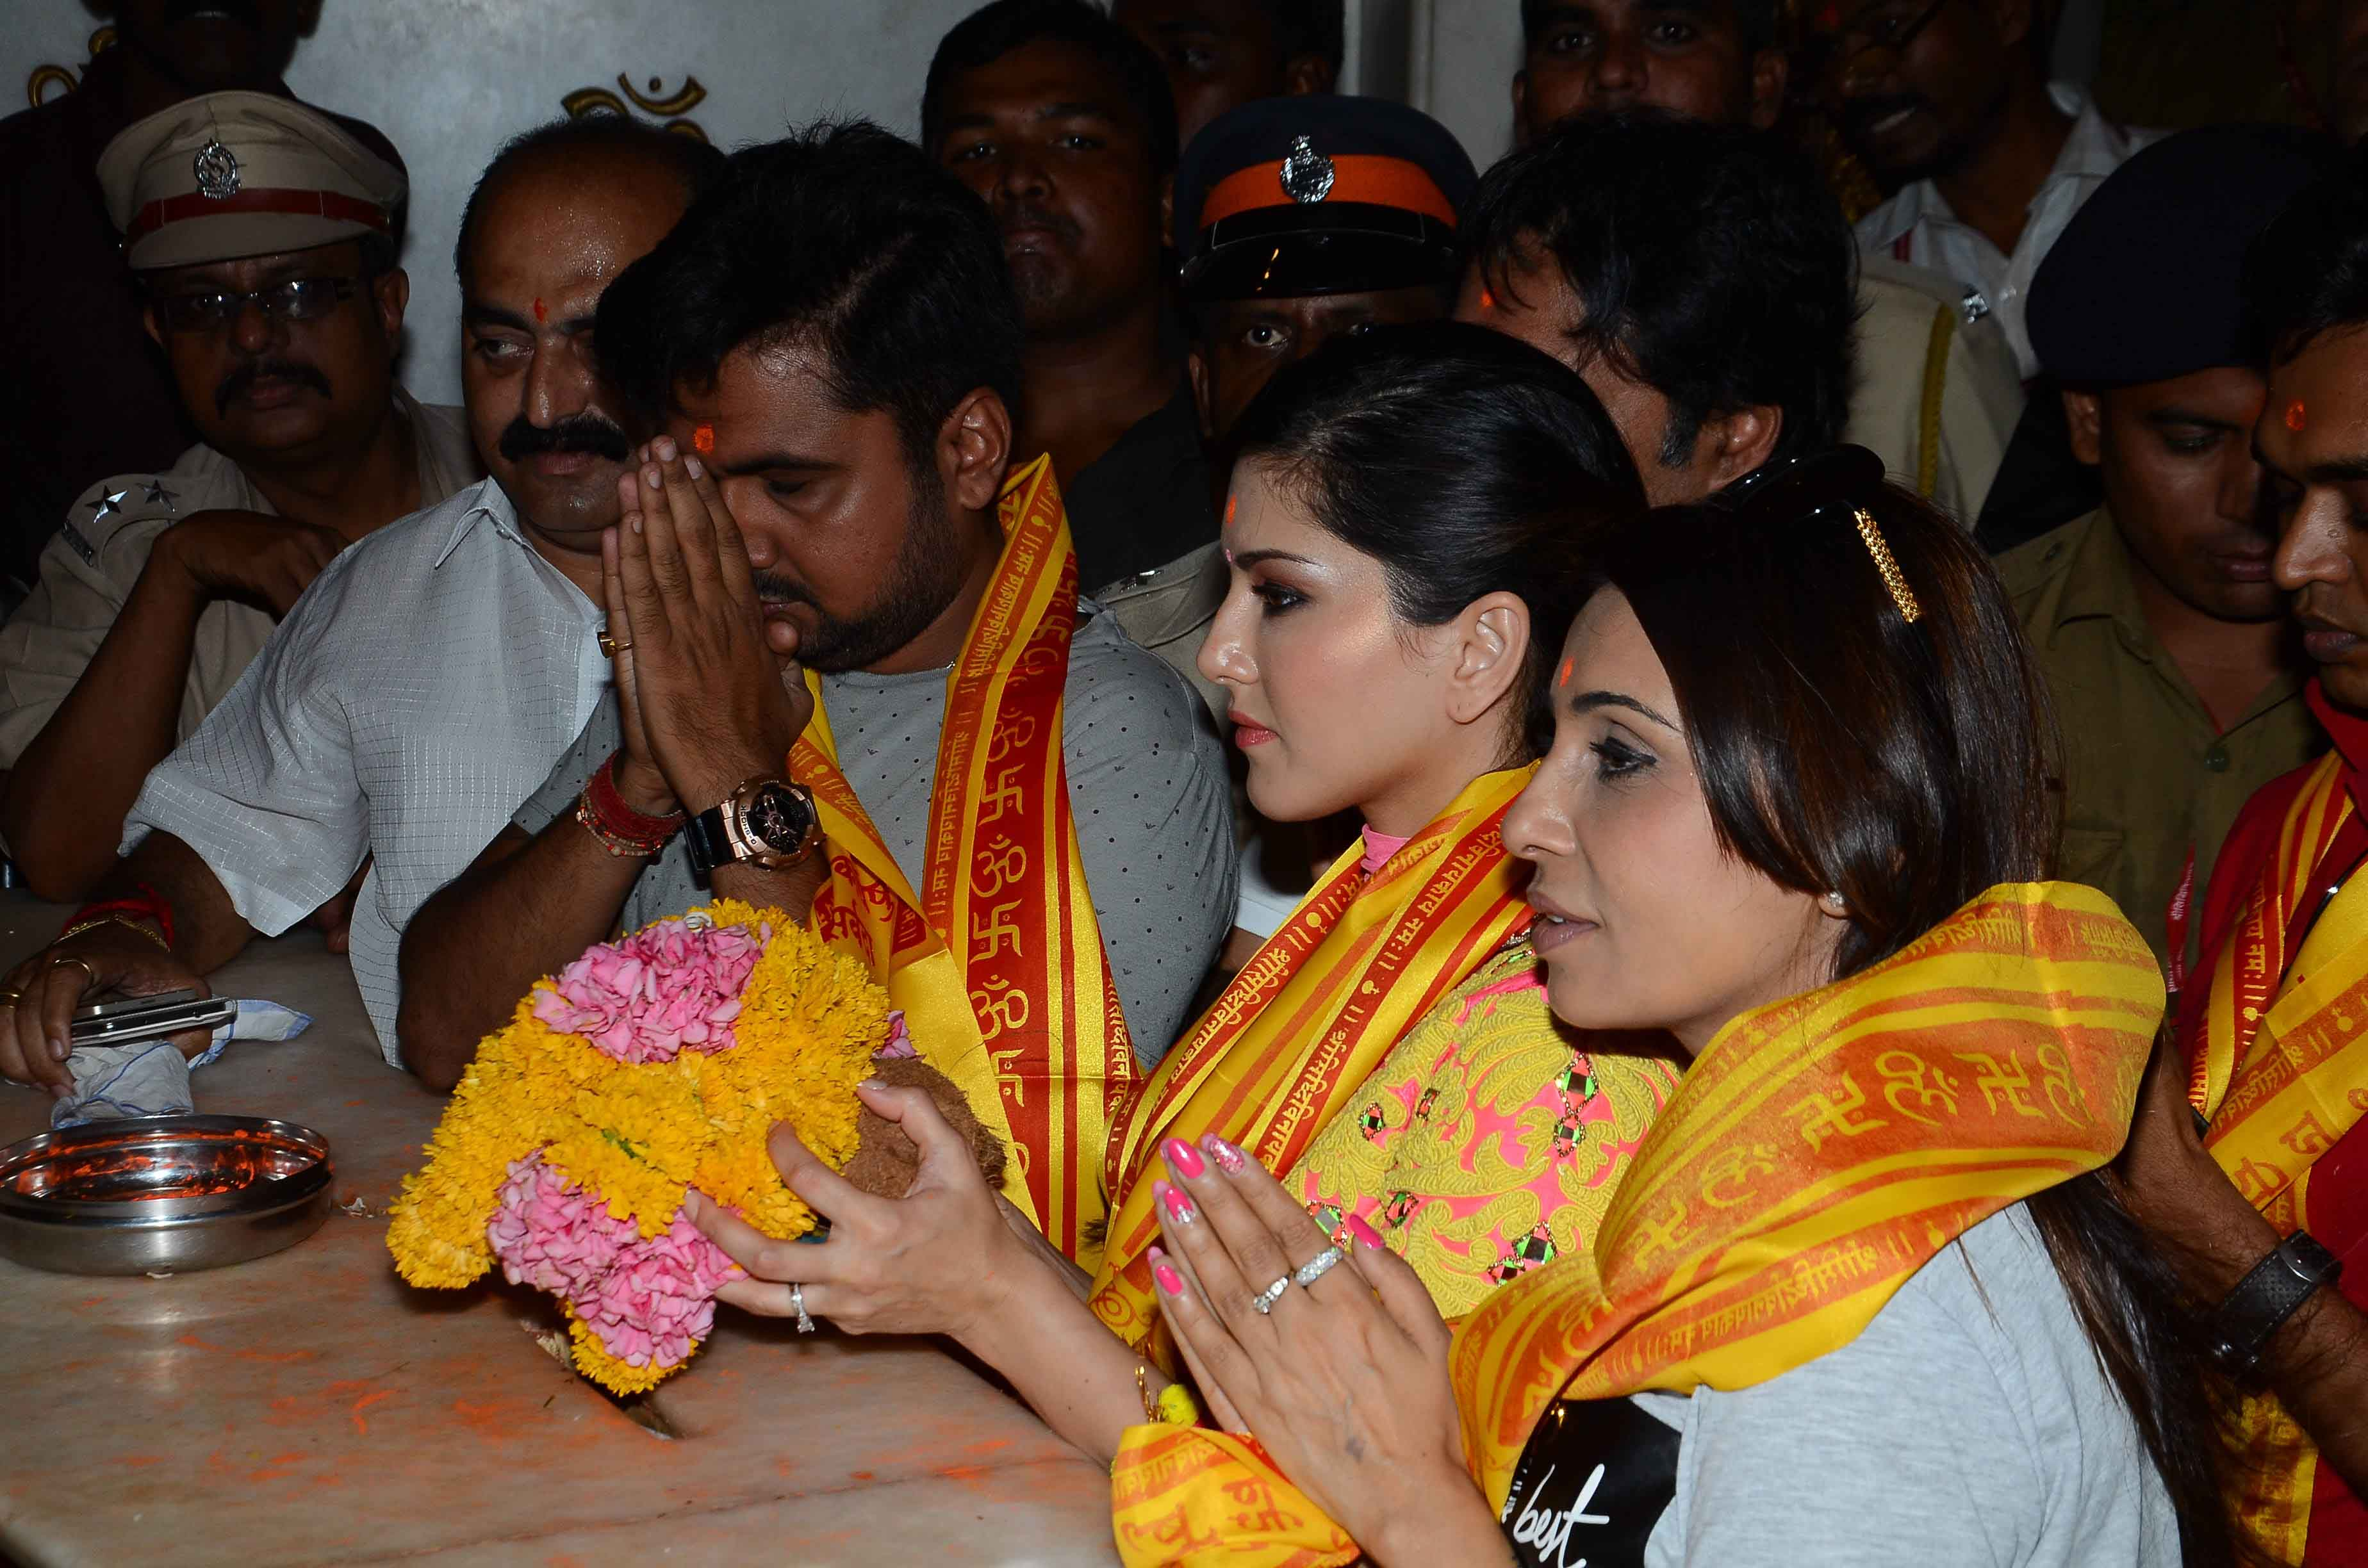 Sunny Leone who has a sex symbol image visited the famous Siddhivinayak temple dressed more modestly than most filmstars